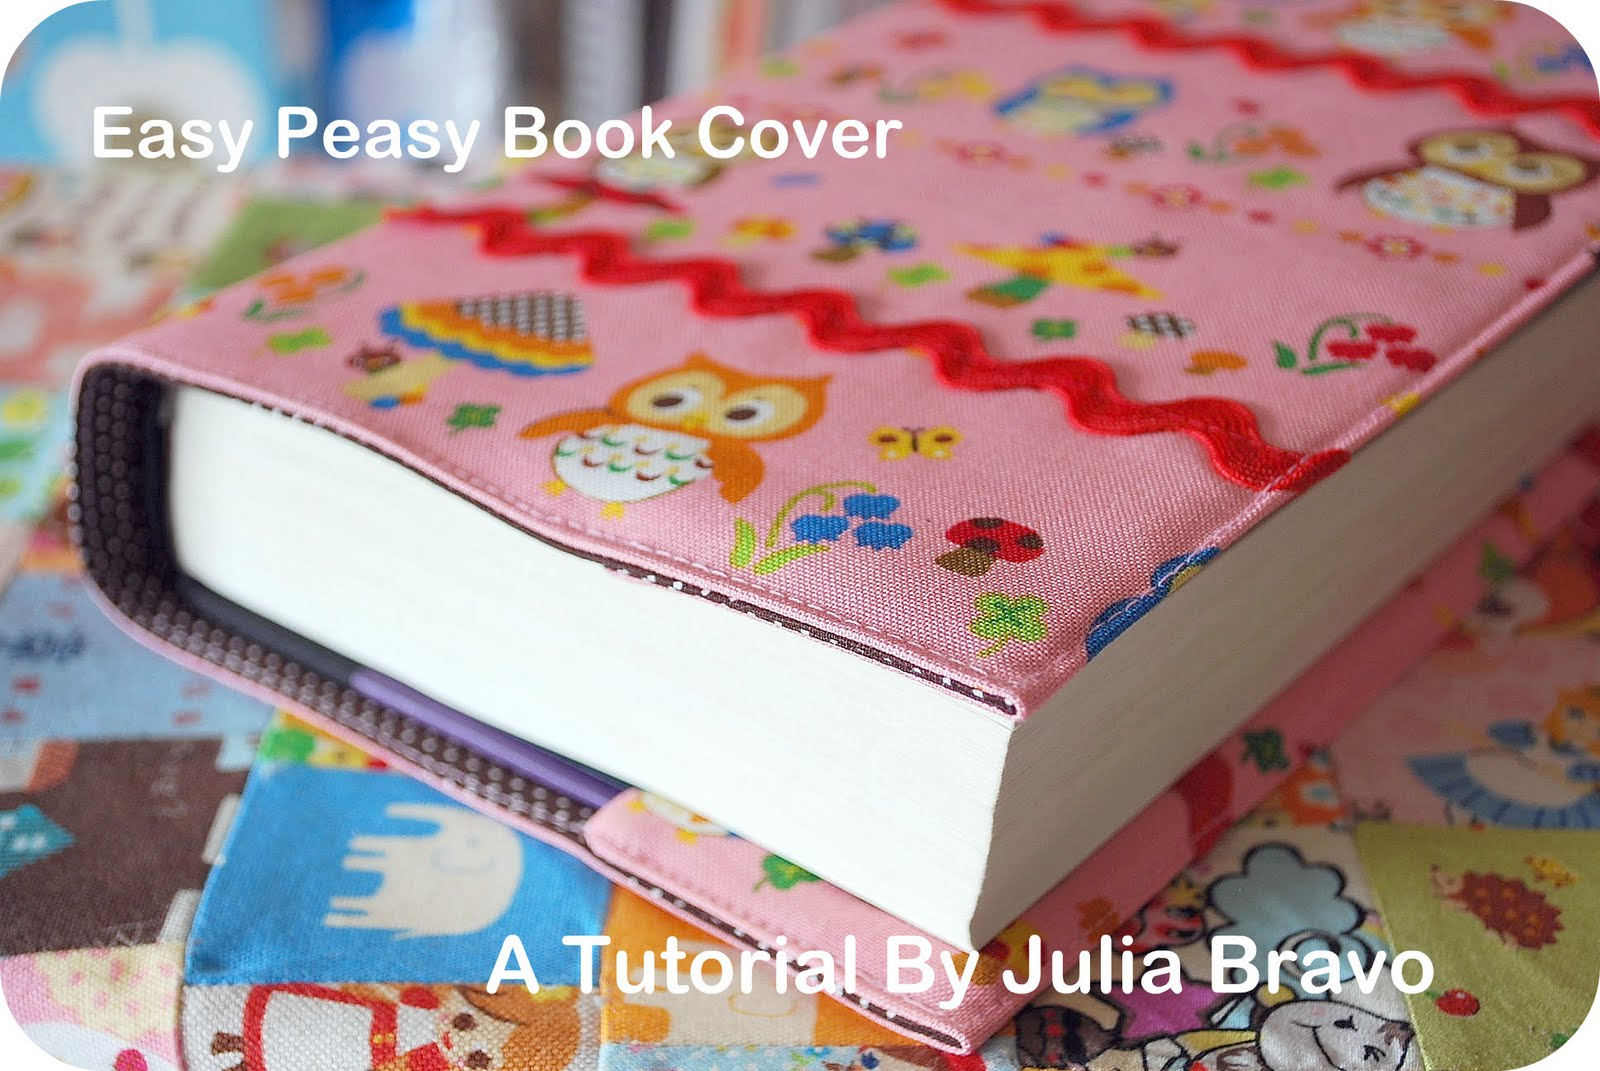 Make A Fabric Book Cover : Stitches book cover tutorial image heavy